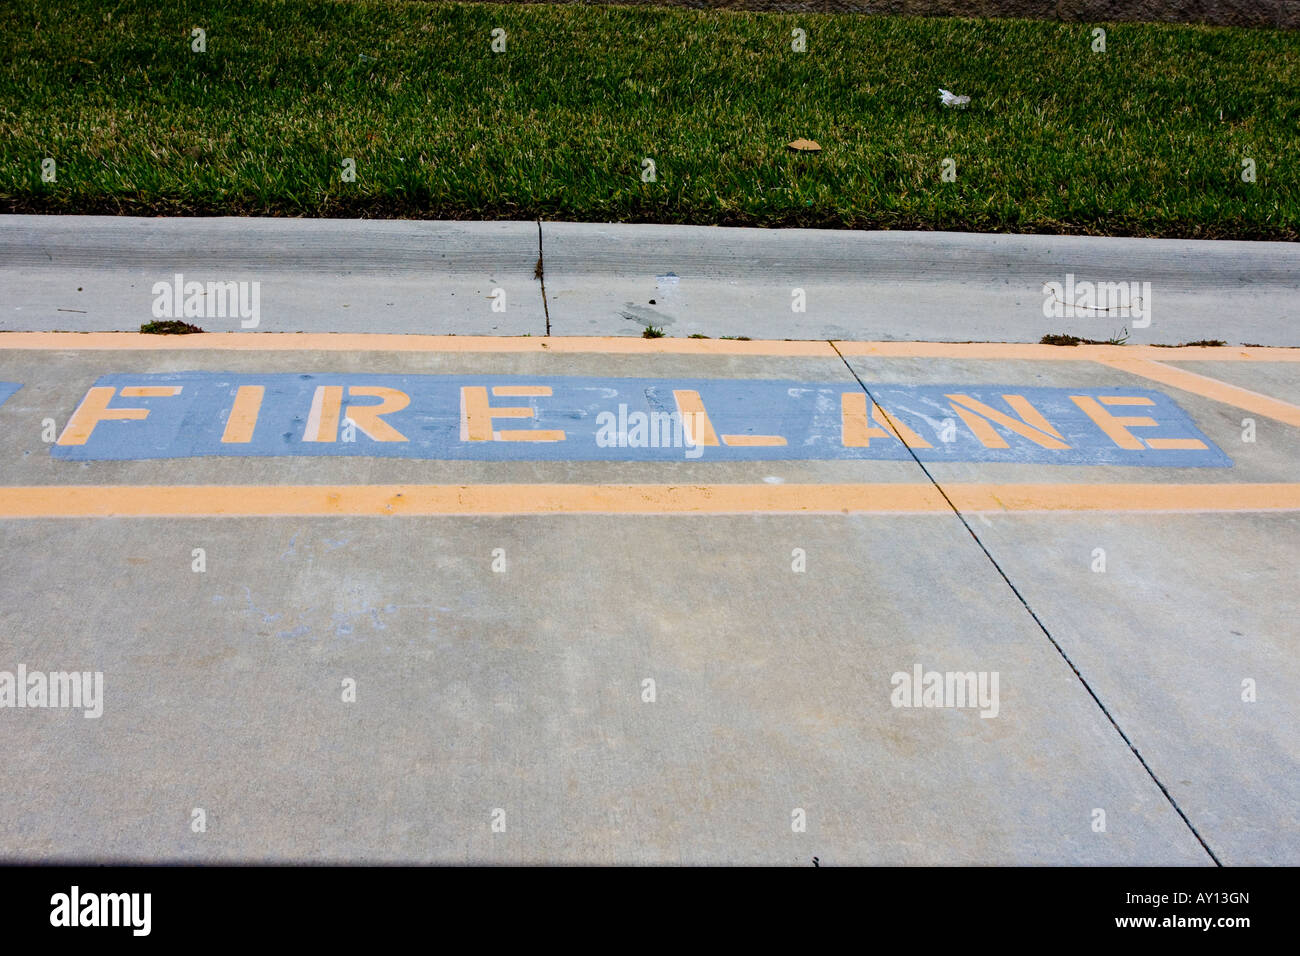 Painted Fire Lane Area Sign - Stock Image